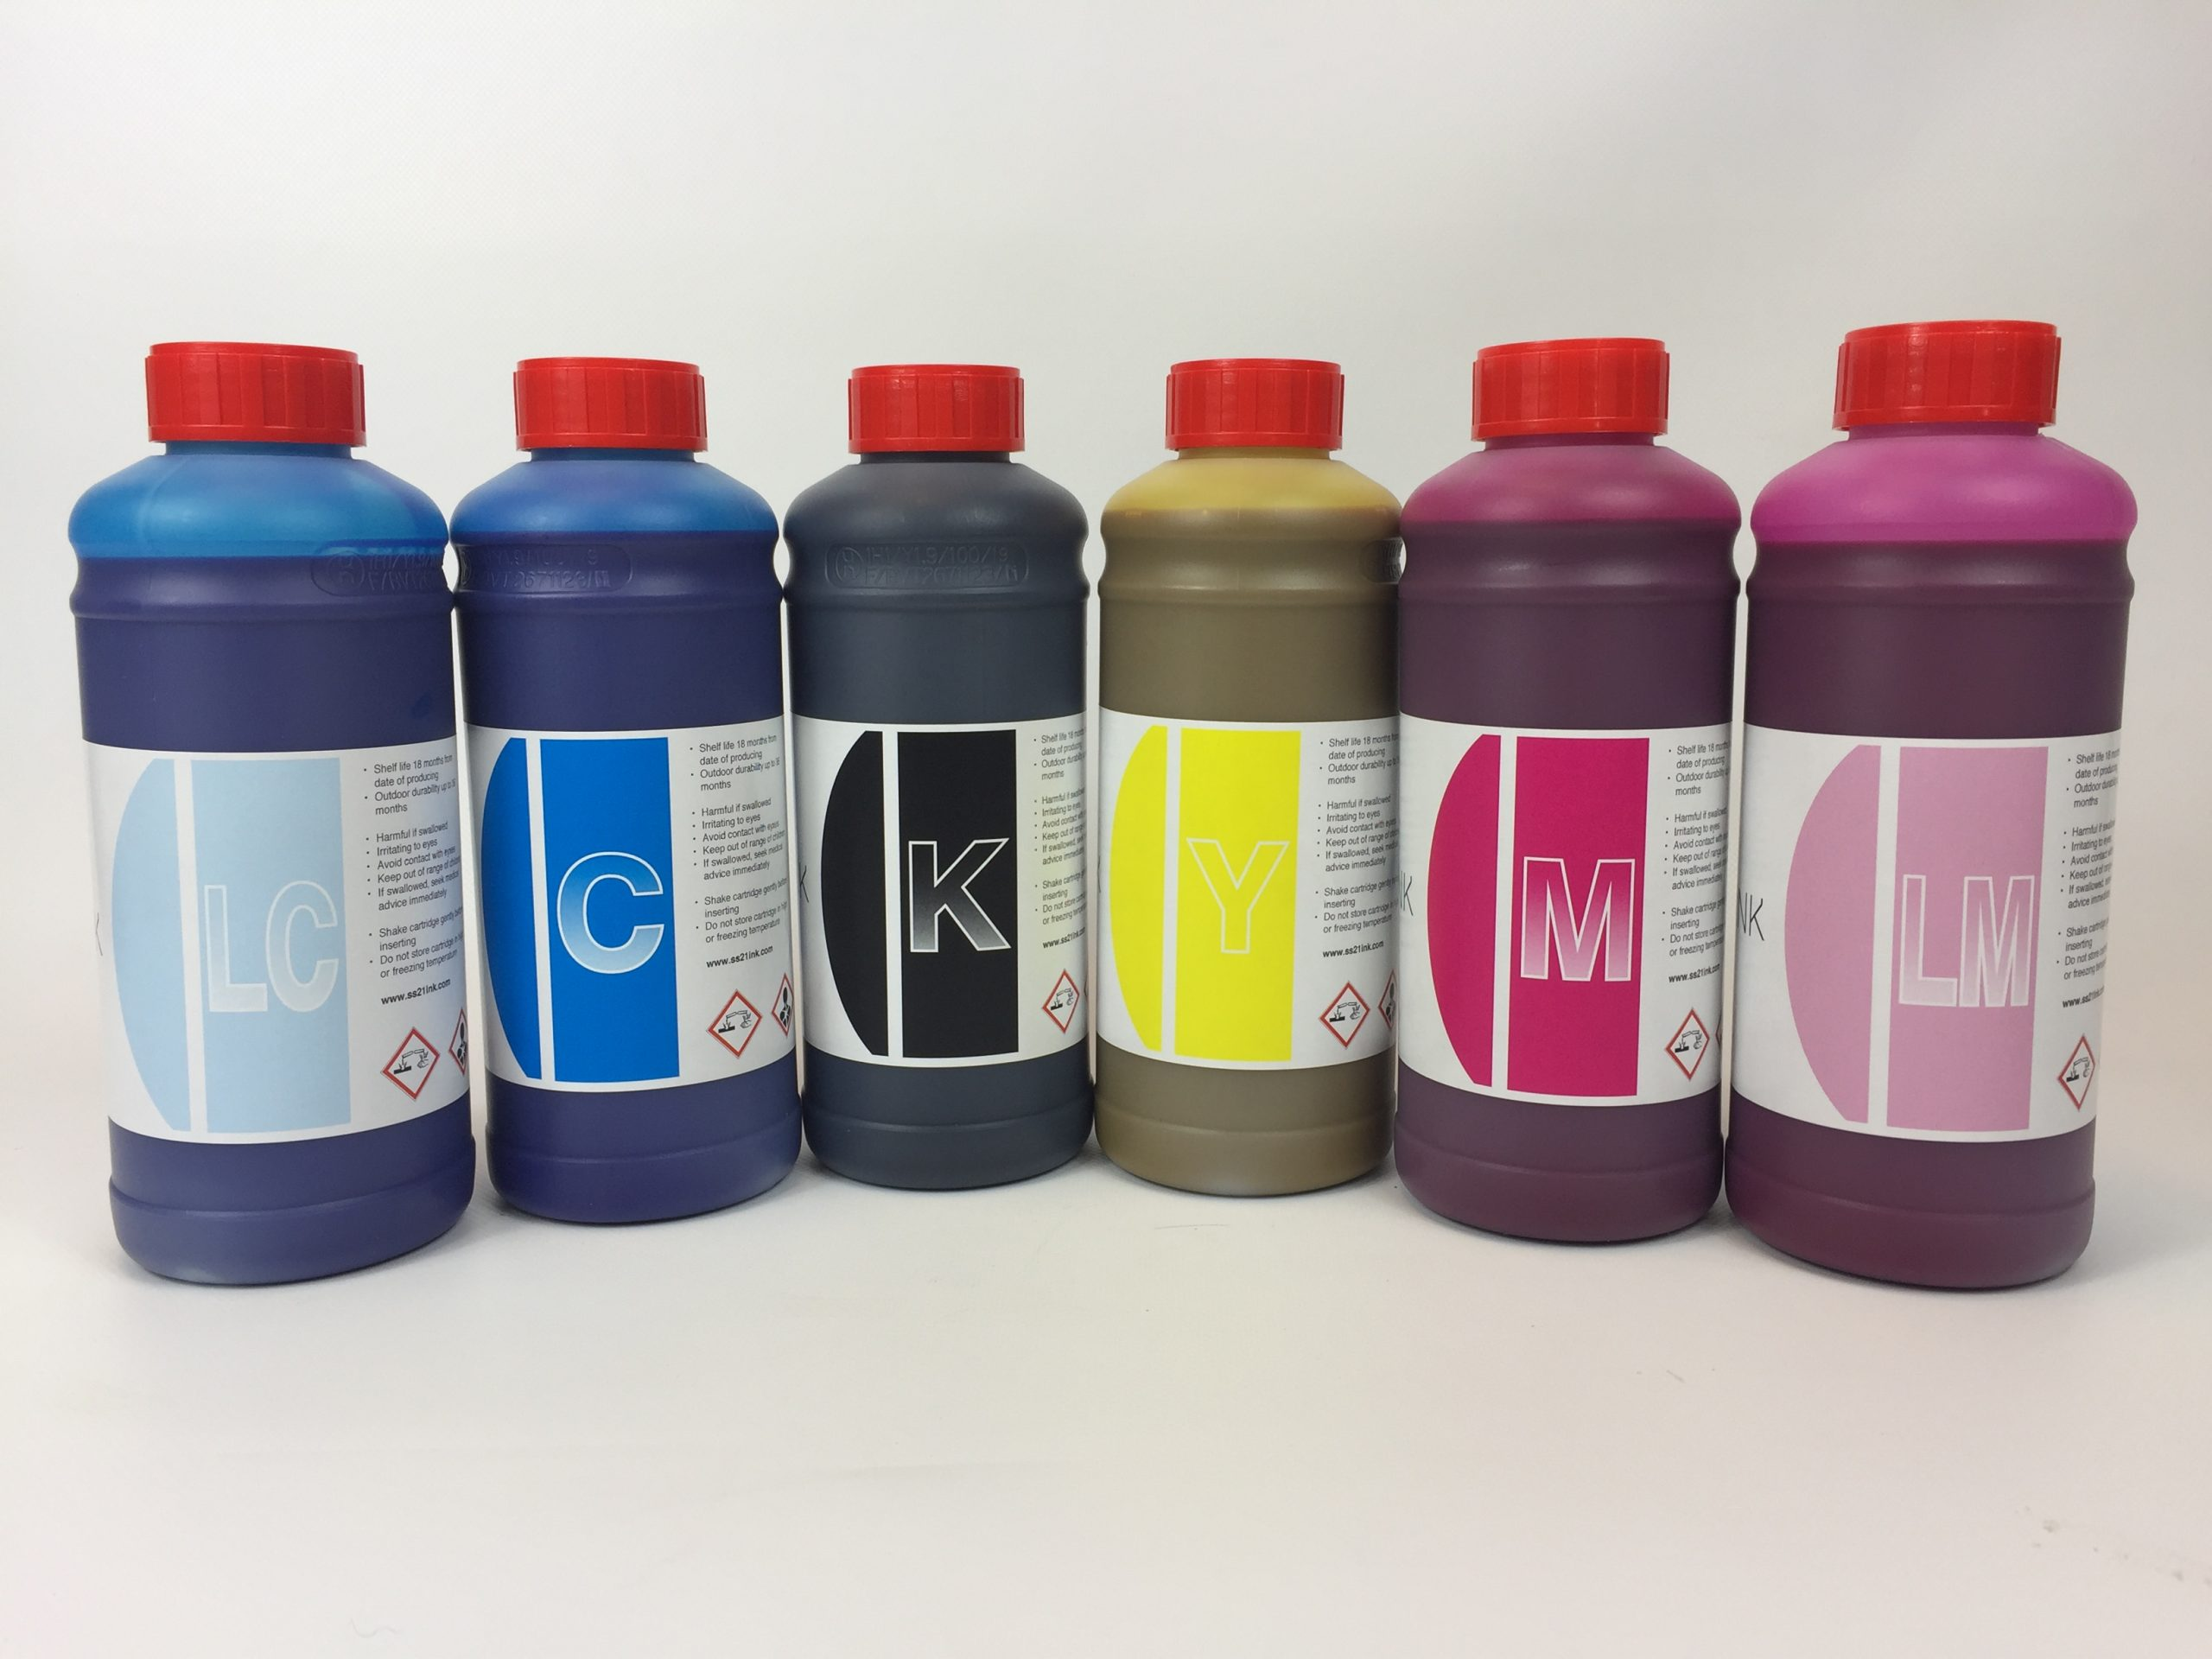 mimkai SS21 1 litre ink bottle